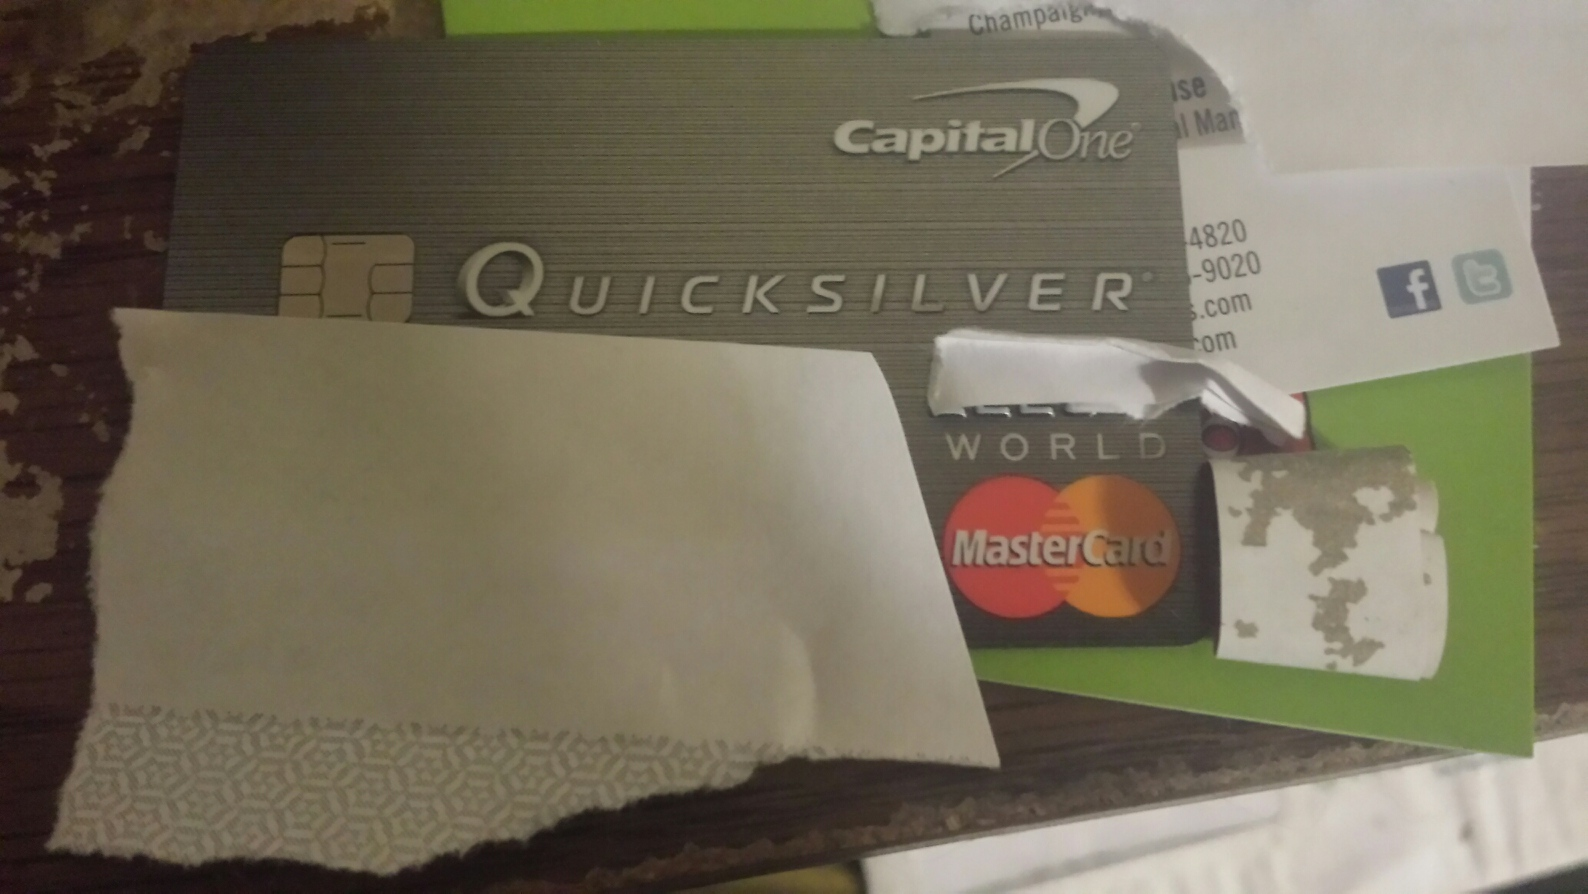 Just got my EMV Chip Quicksilver card Page 6 myFICO